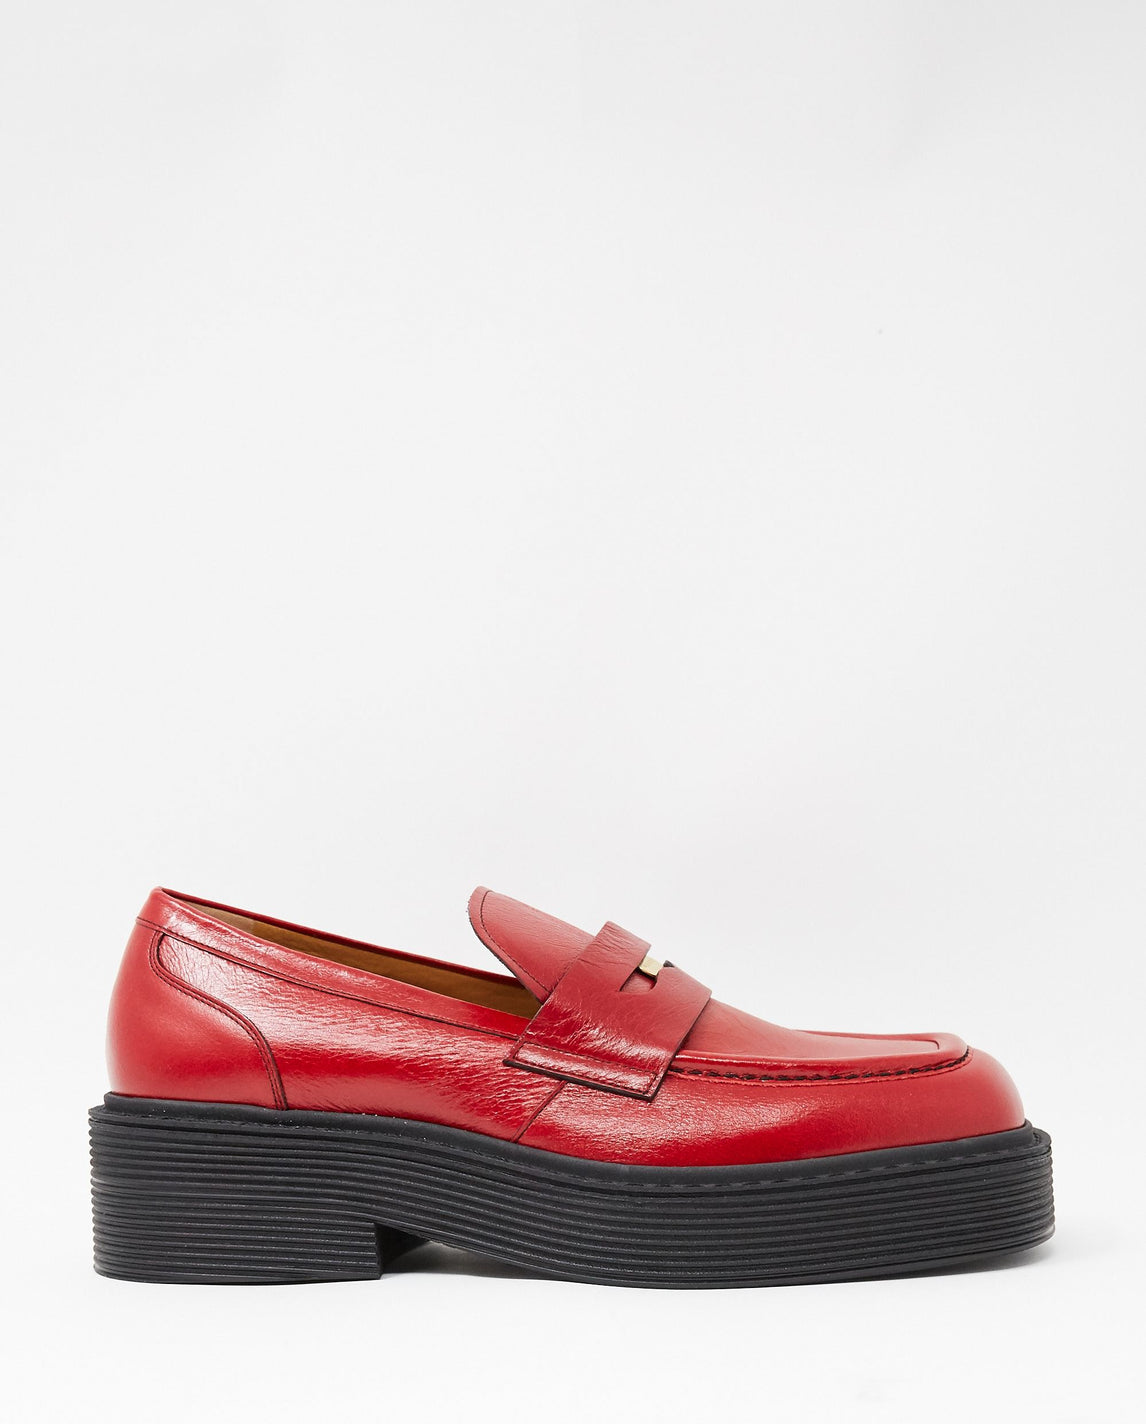 Mocassin Shoe - Red UNISEX MARNI